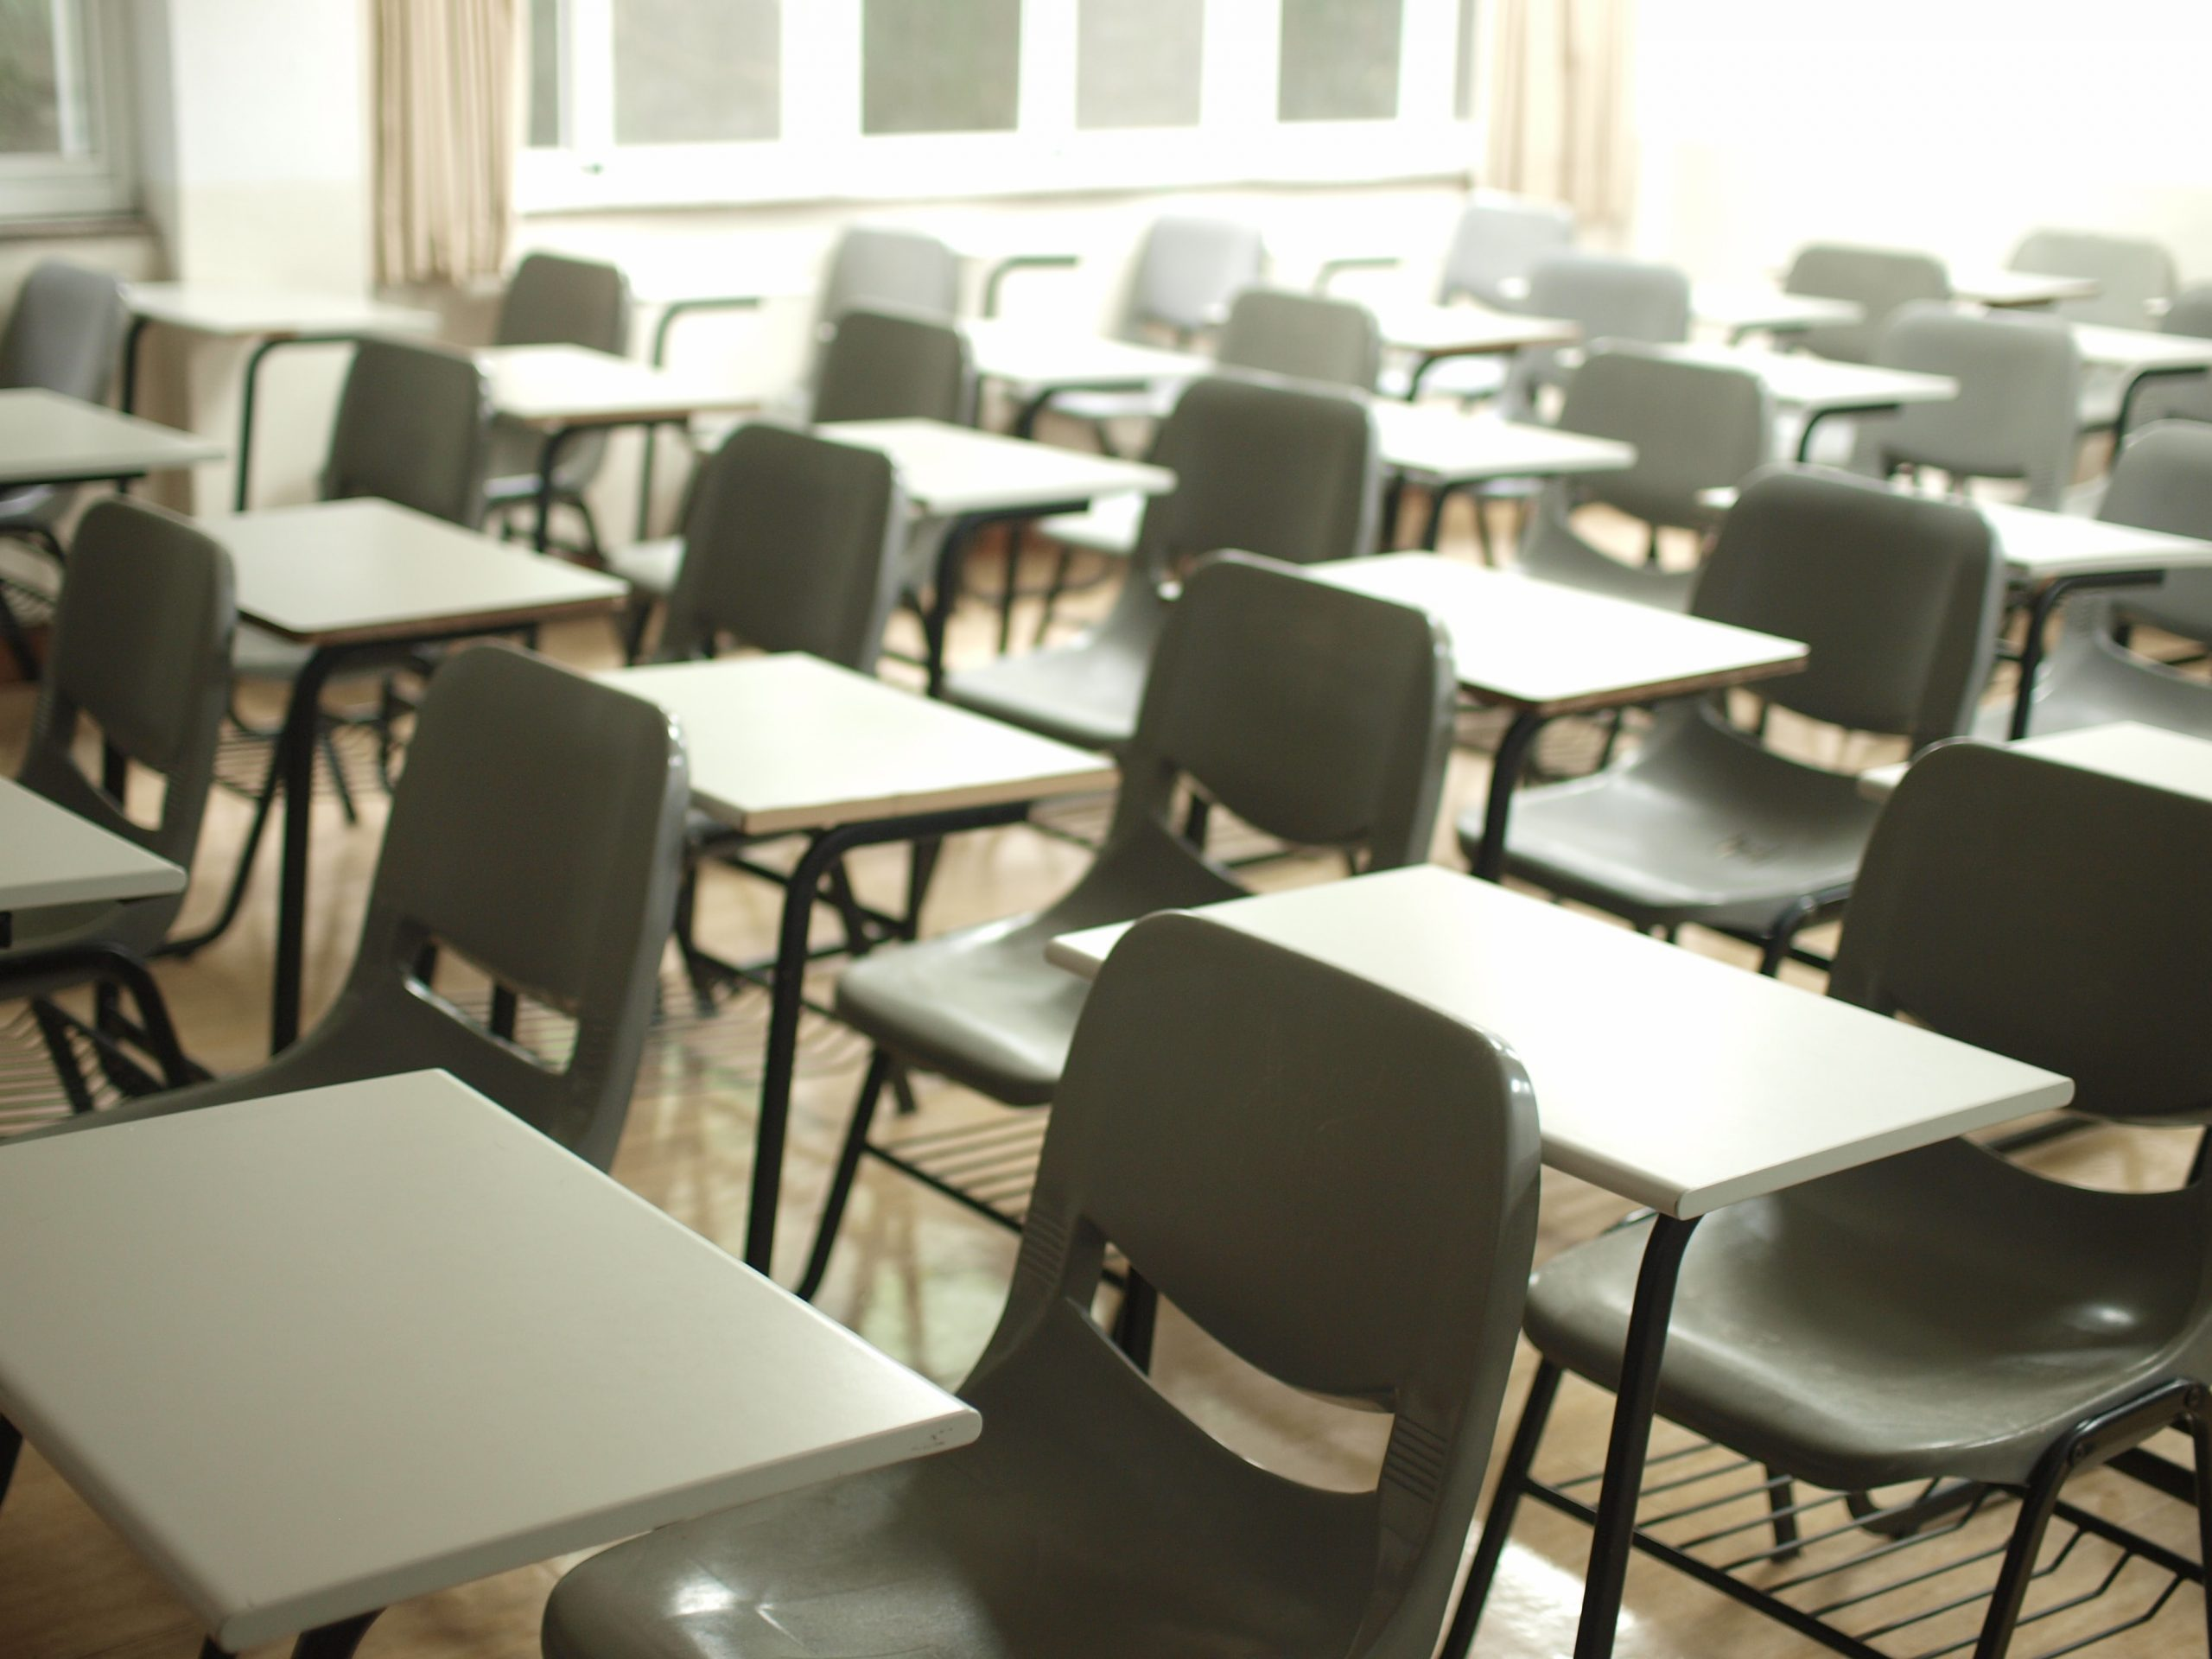 An empty classroom shows a series of desks and chairs